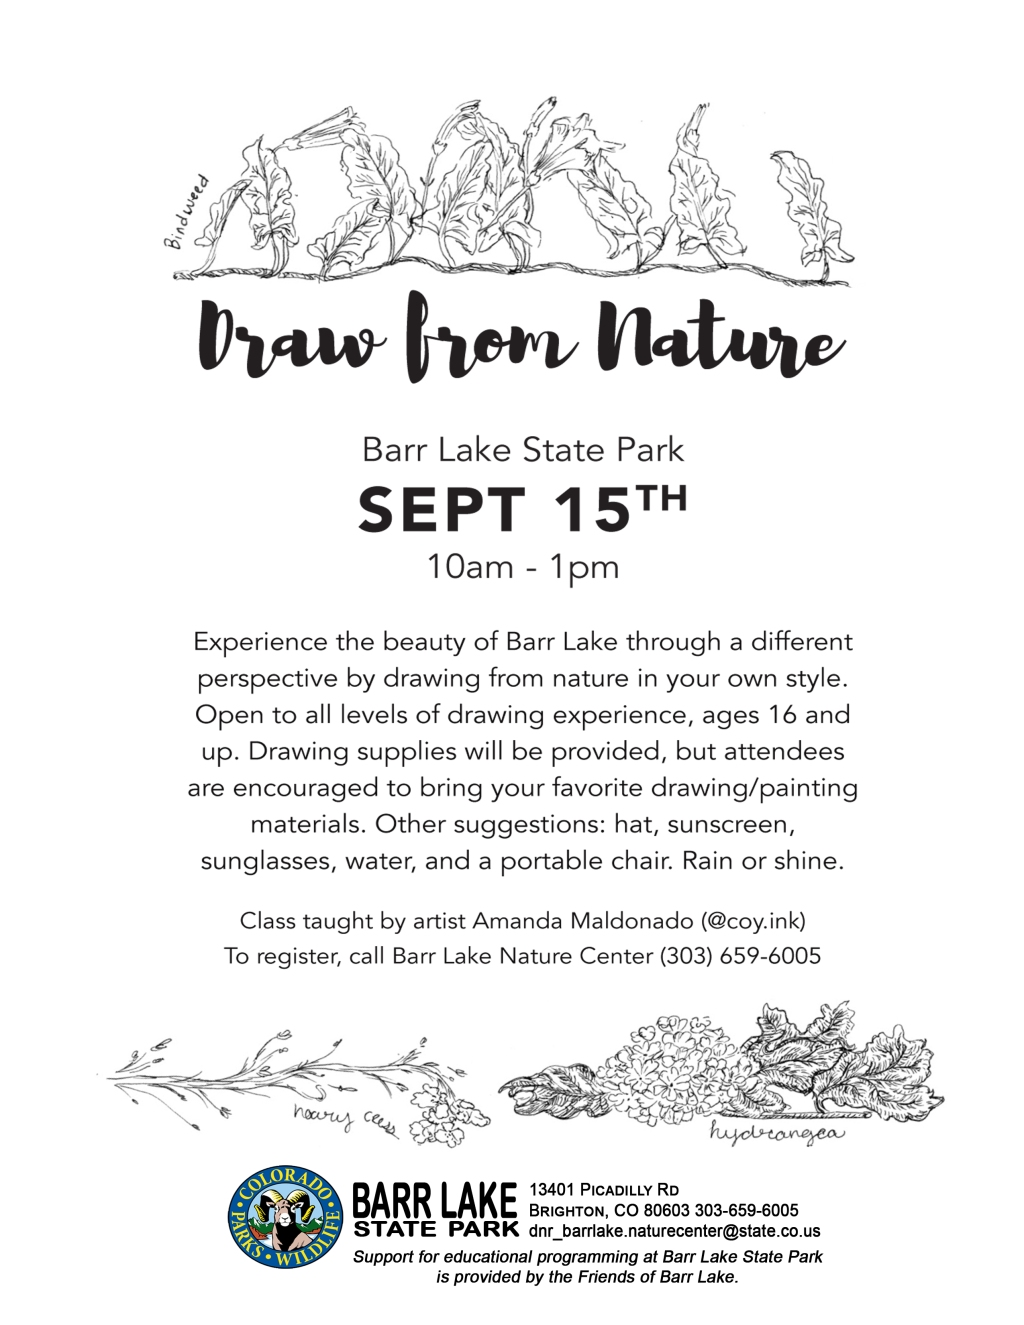 Draw From Nature - Barr Lake State Park Flyer - Sept 15